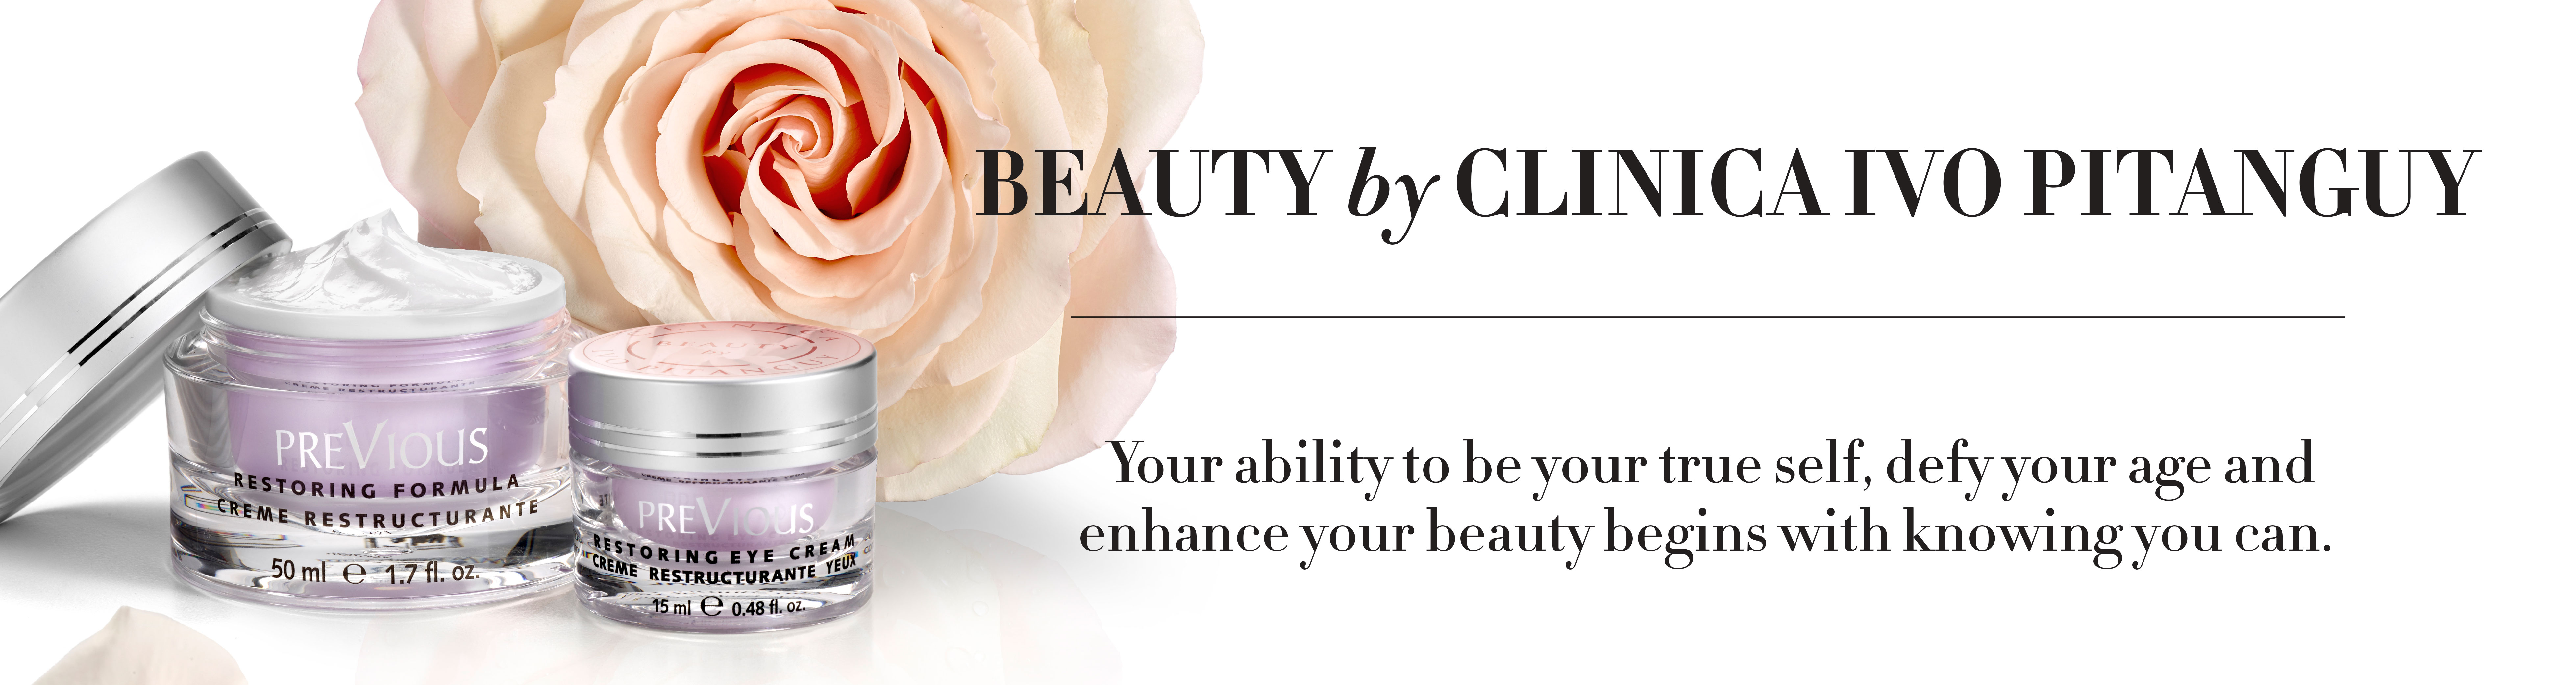 Beauty by Clinica Ivo Pitanguy